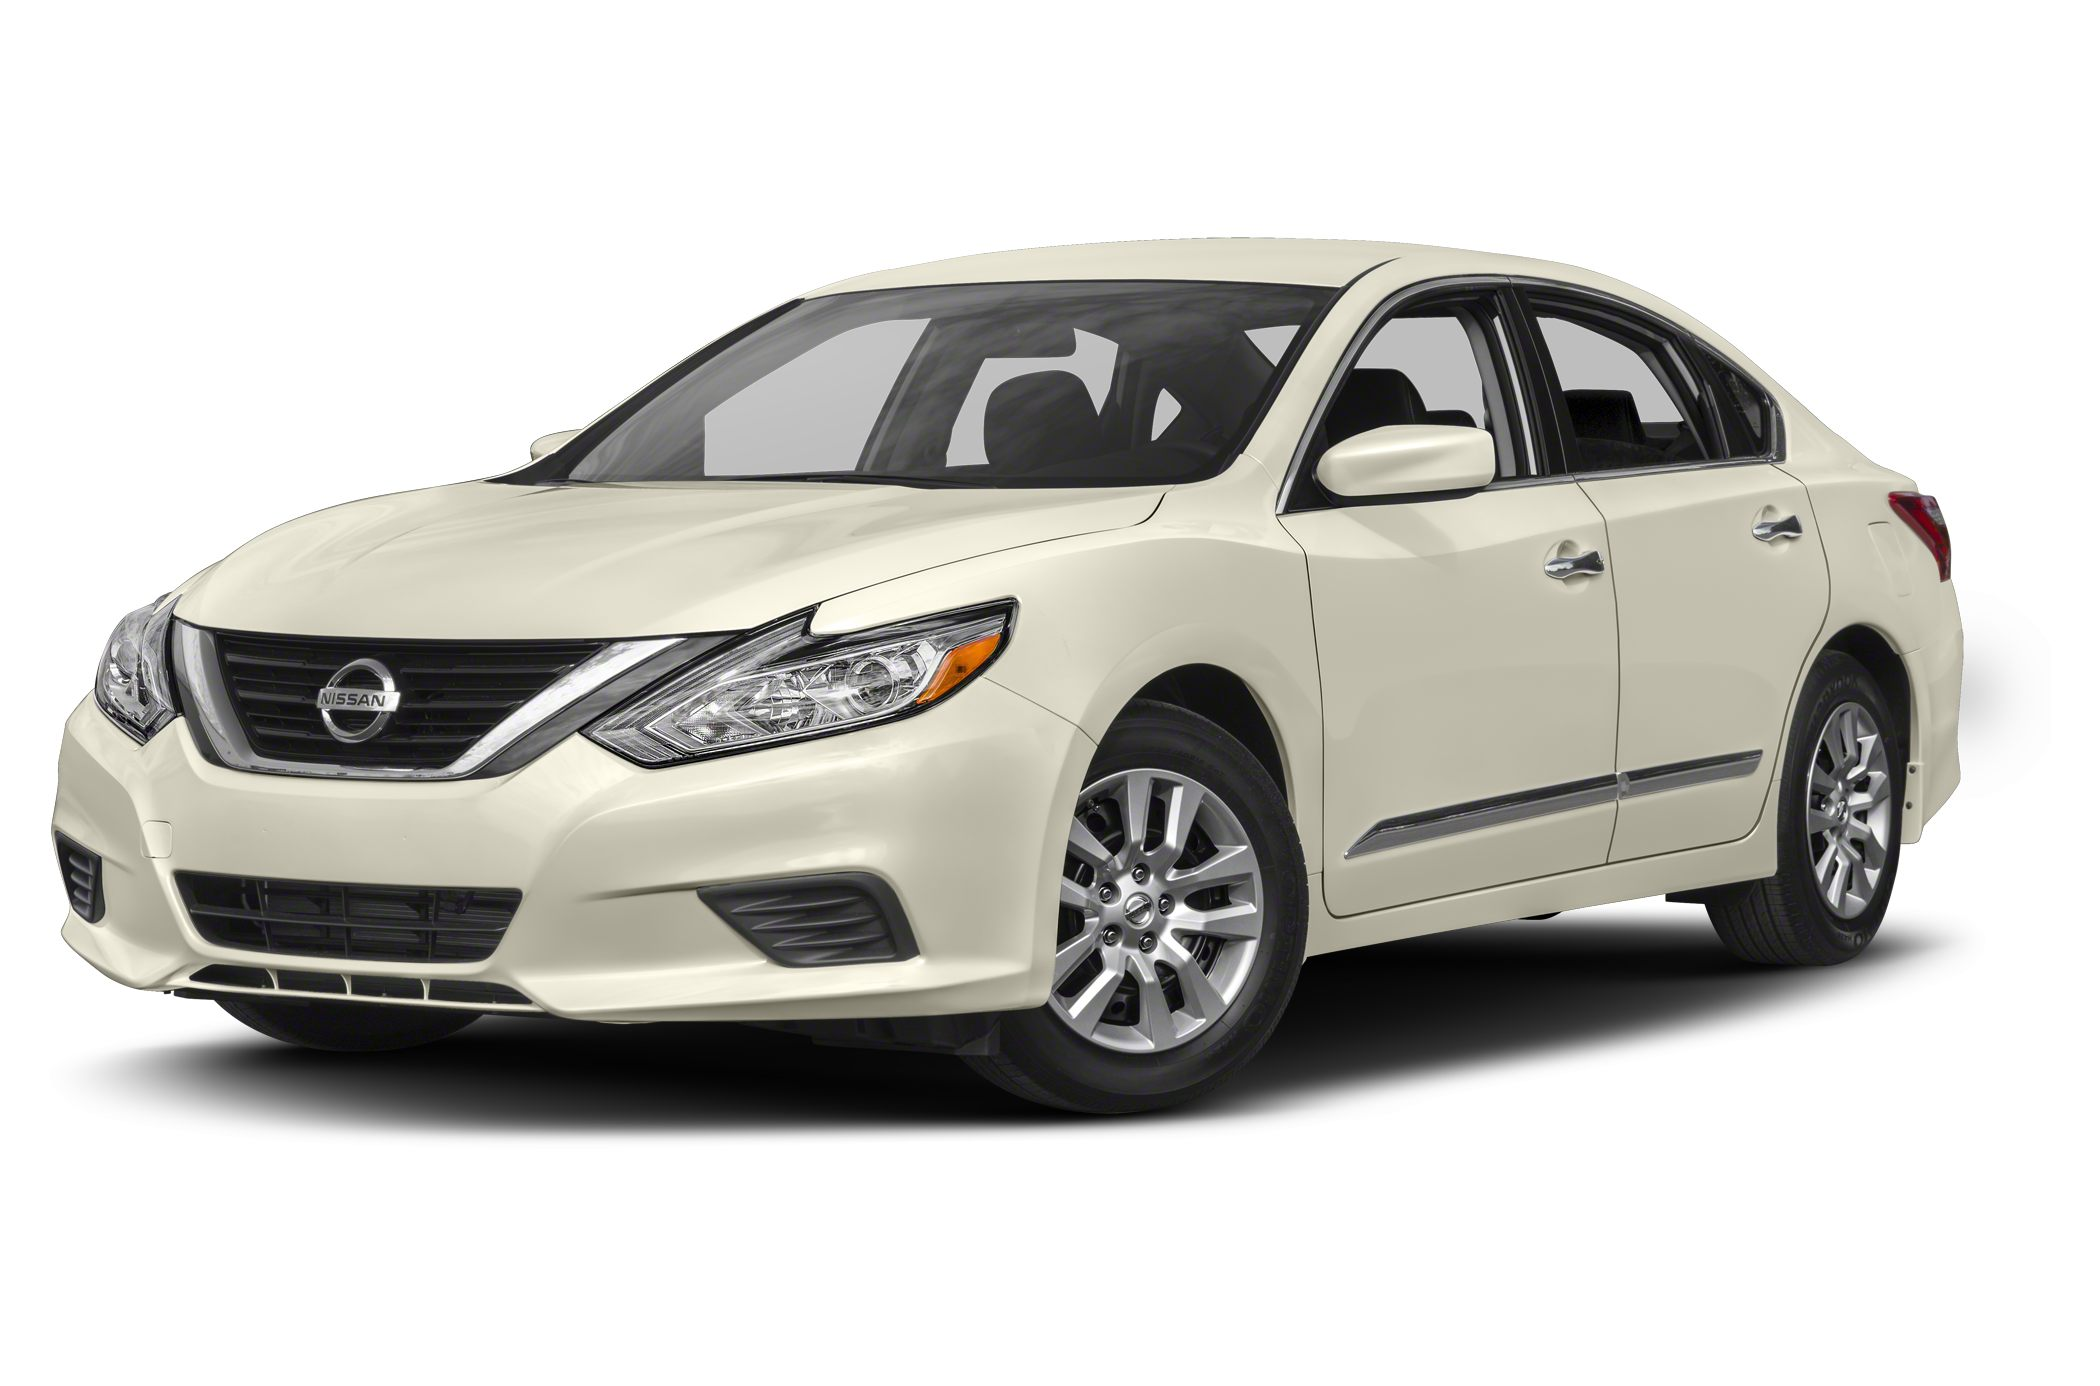 Image result for nissan altima